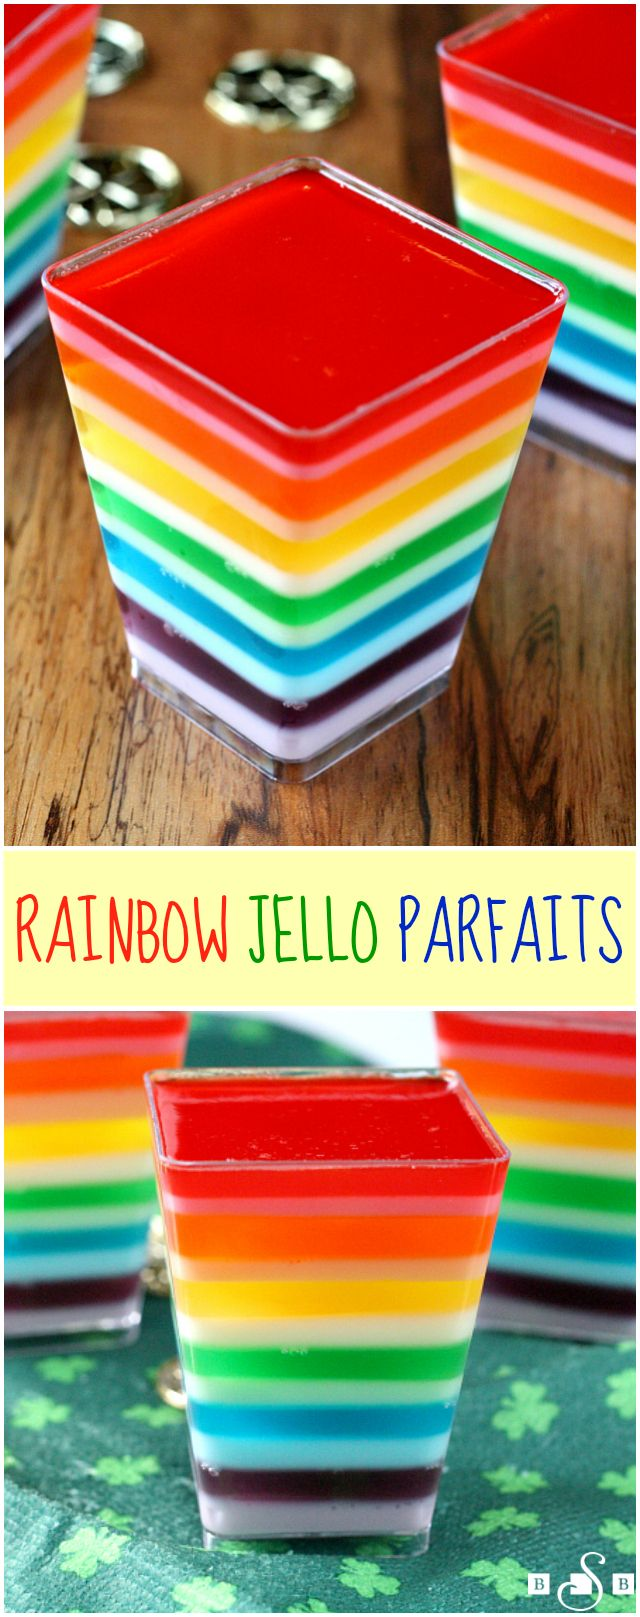 Rainbow Jello Parfaits - Butter With a Side of Bread